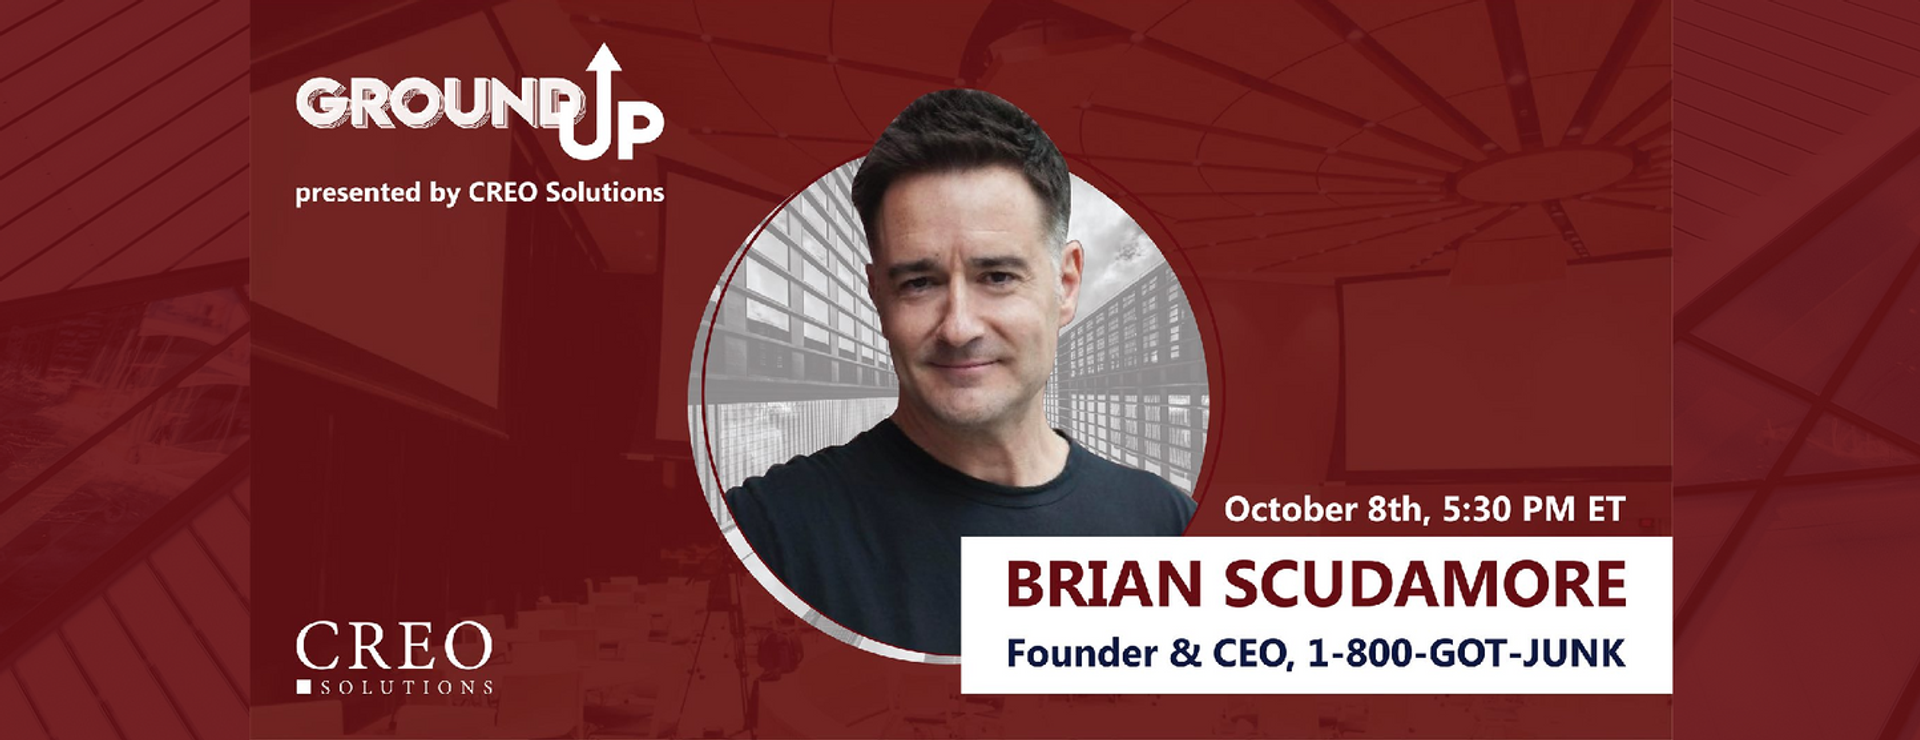 GROUND UP SPEAKER: Brian Scudmore, 1-800-GOT-JUNK